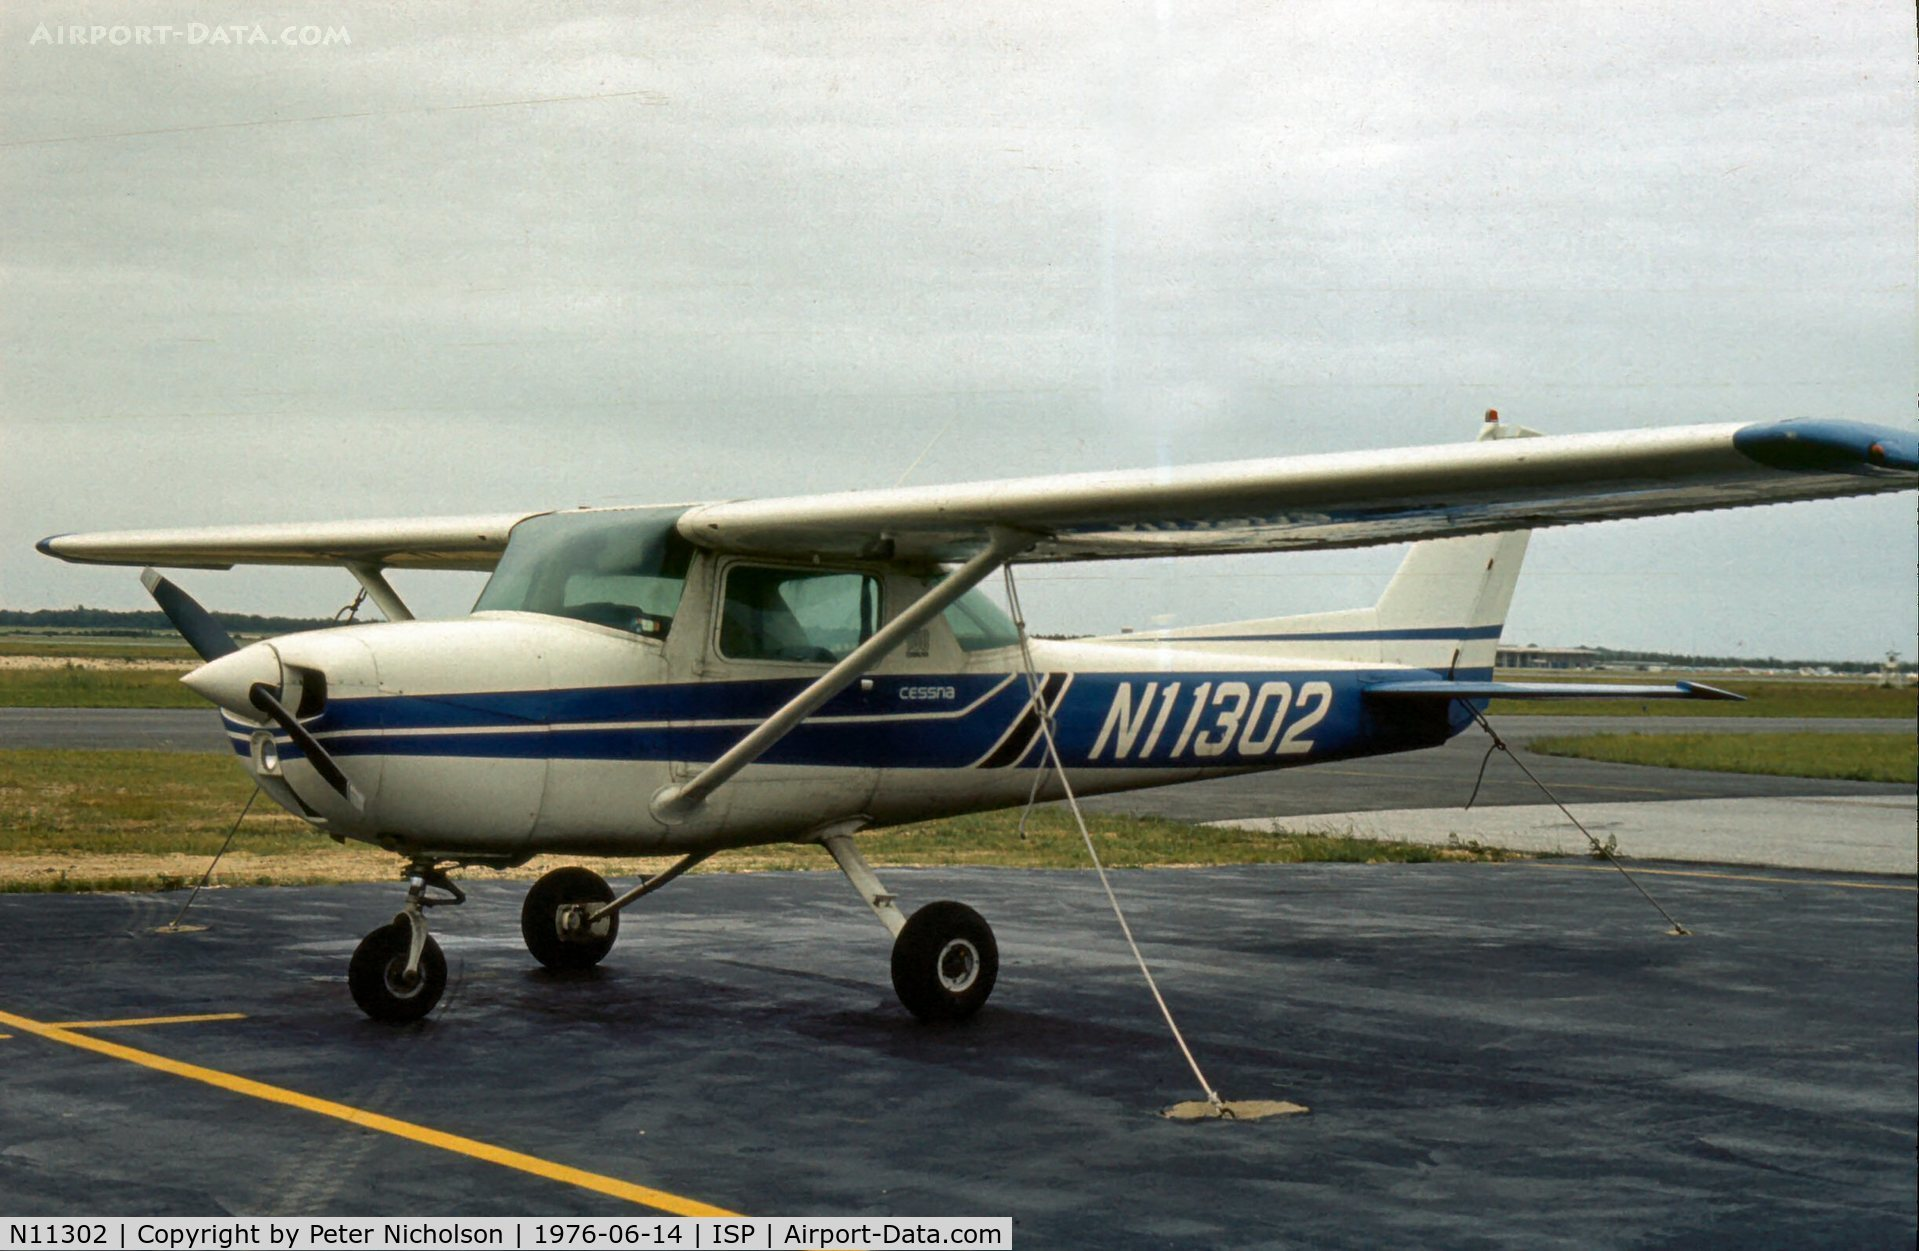 N11302, 1973 Cessna 150L C/N 15075311, This Cessna Commuter was parked at Islip-MacArthur in the summer of 1976.